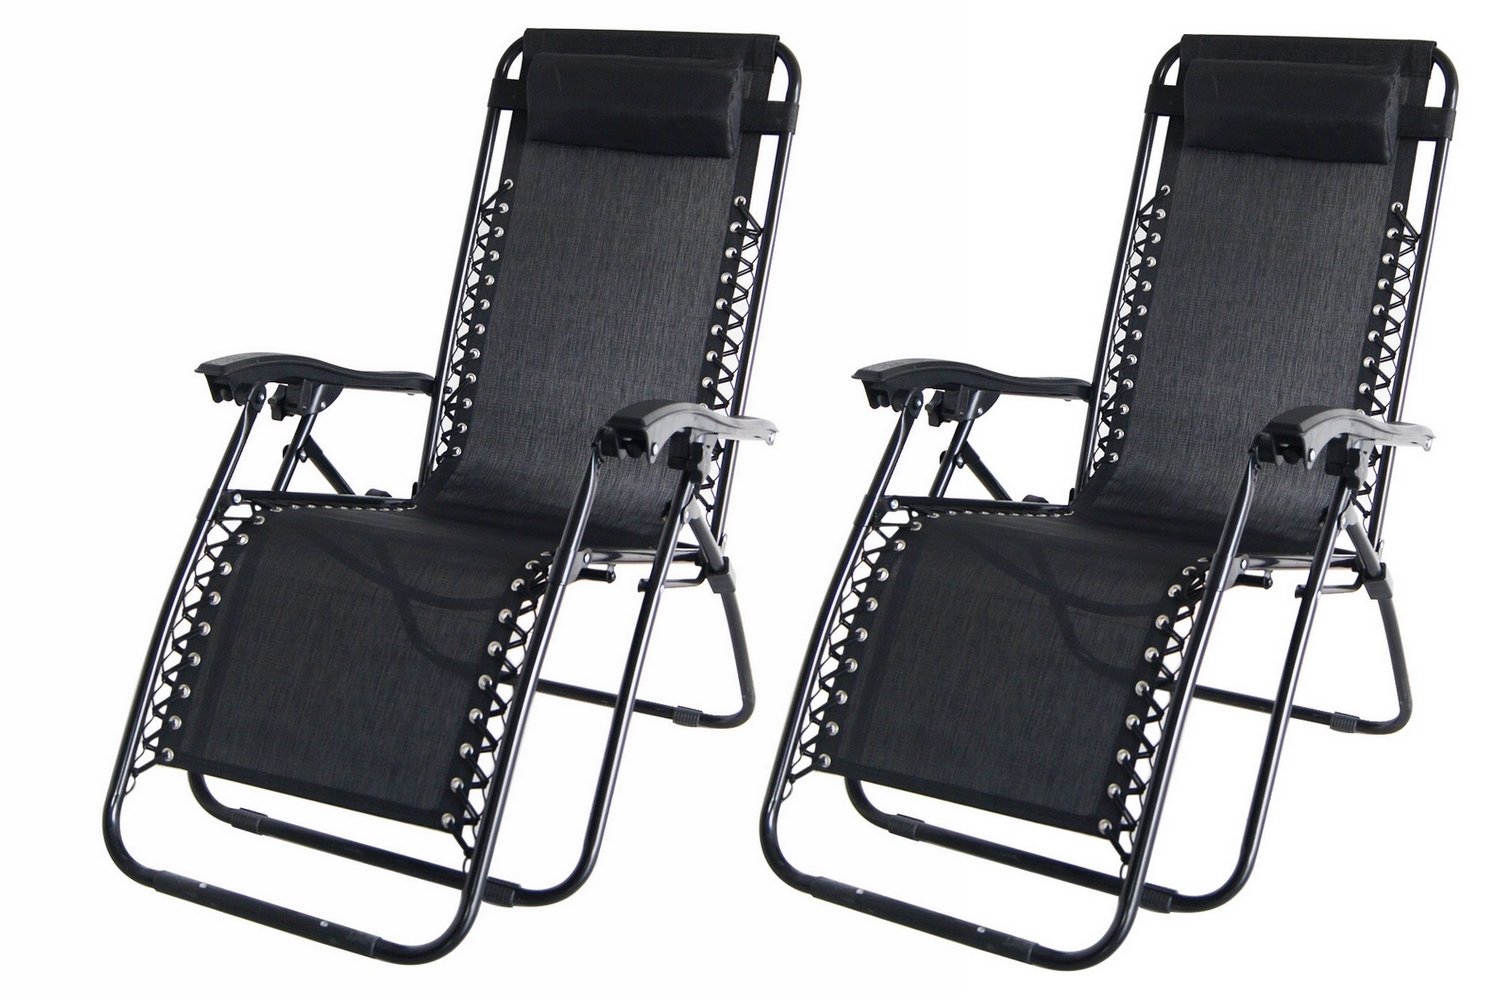 2x Palm Springs Zero Gravity Chairs Lounge Outdoor Yard